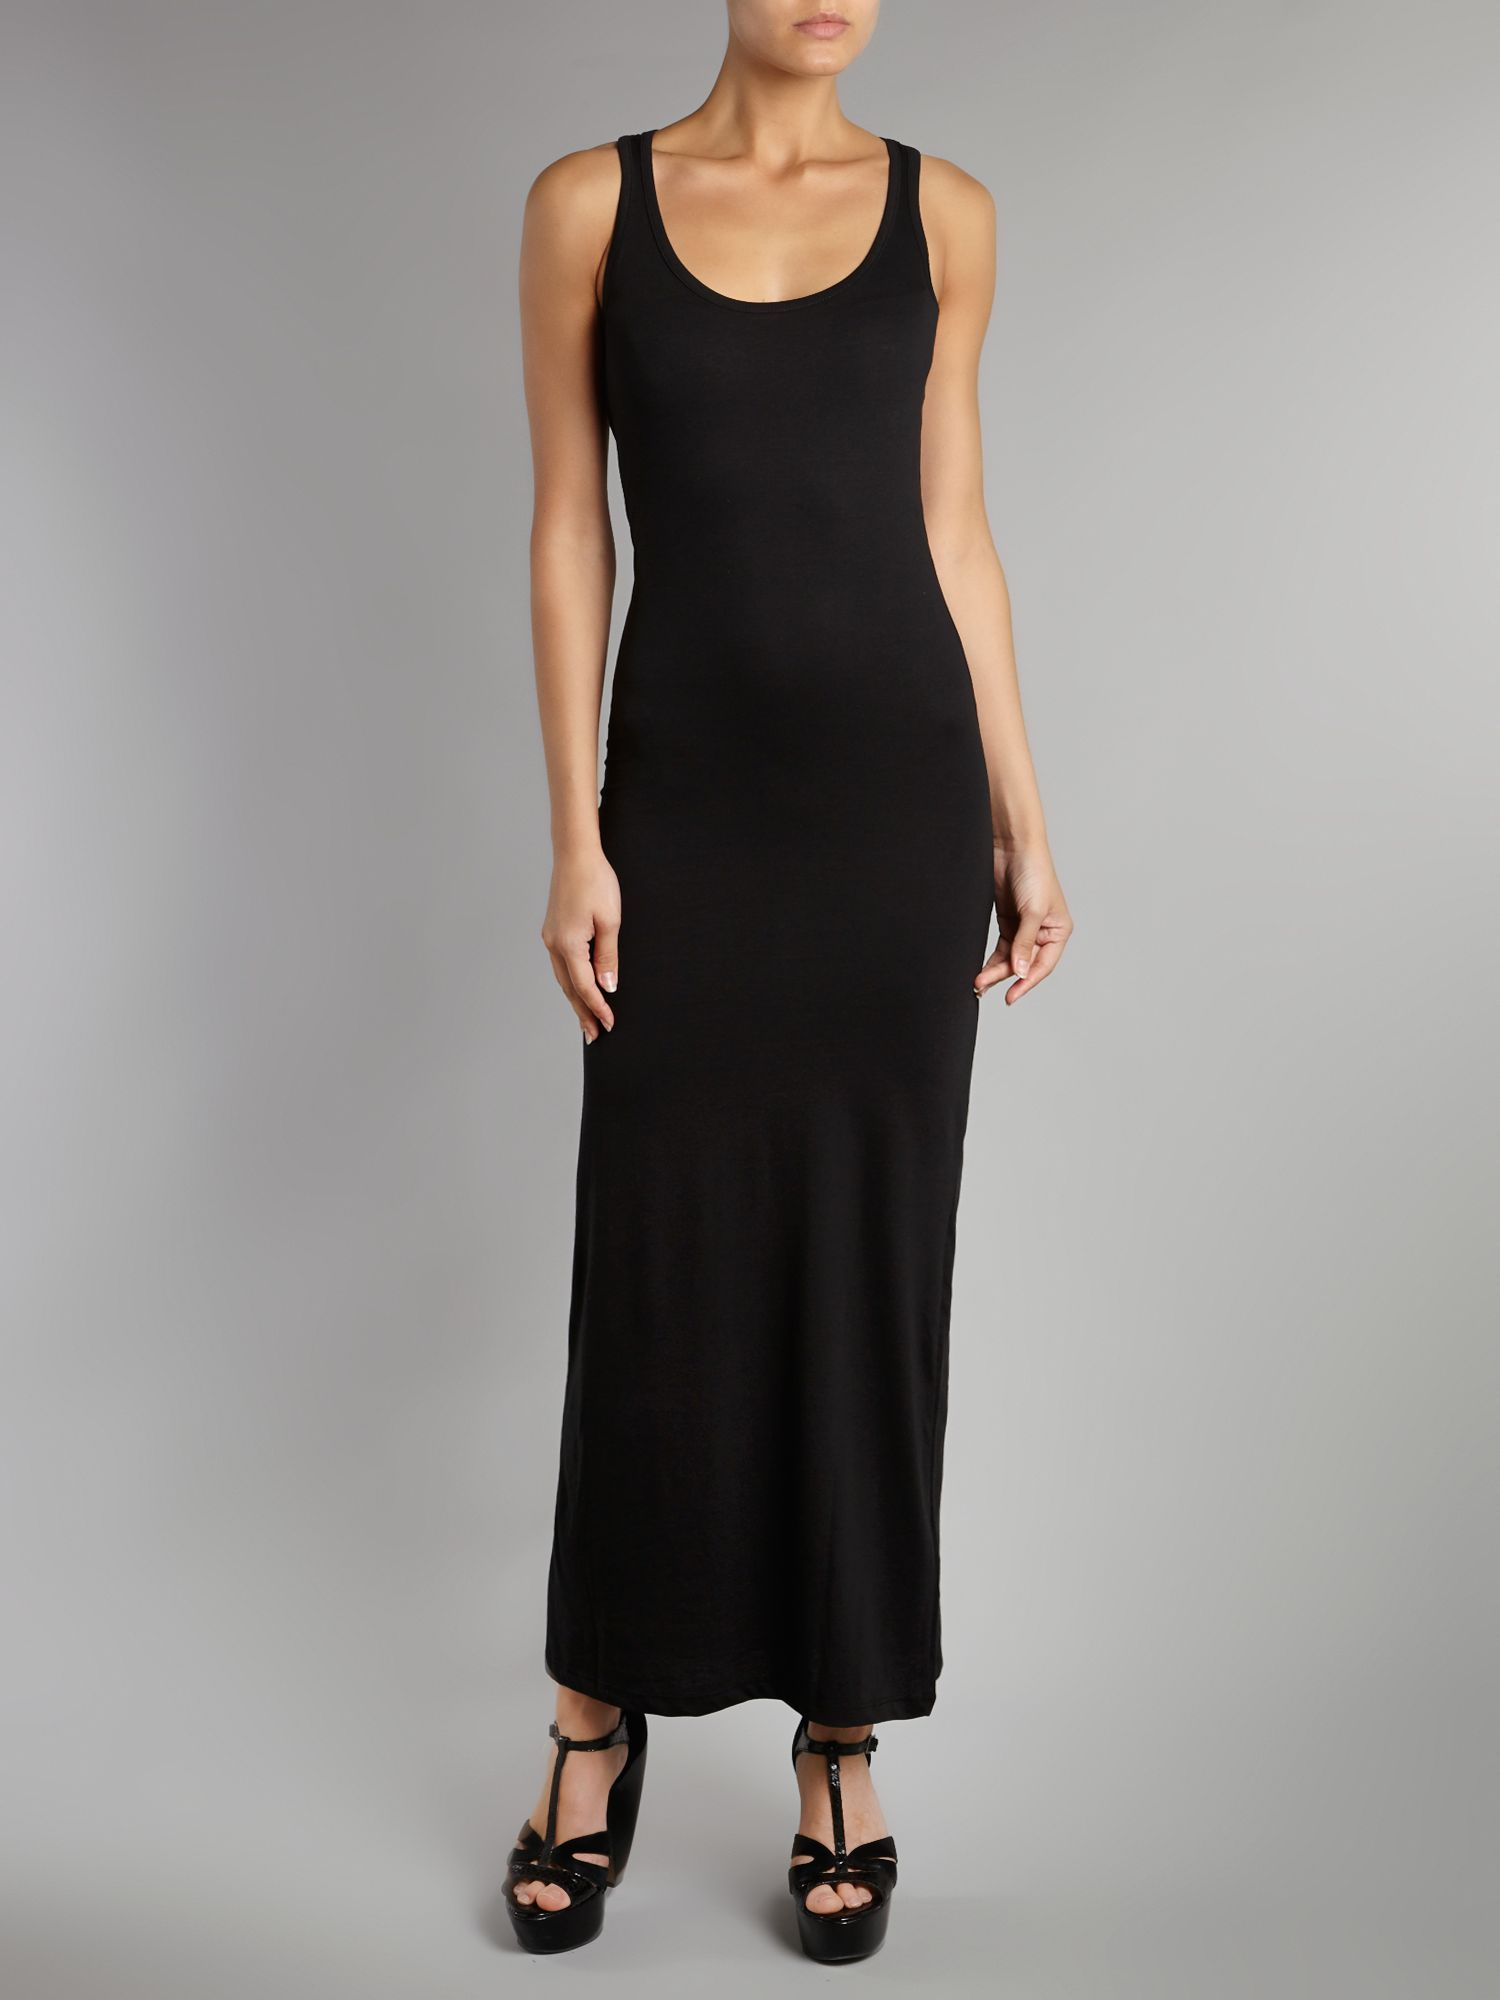 Nanna sleeveless maxi dress